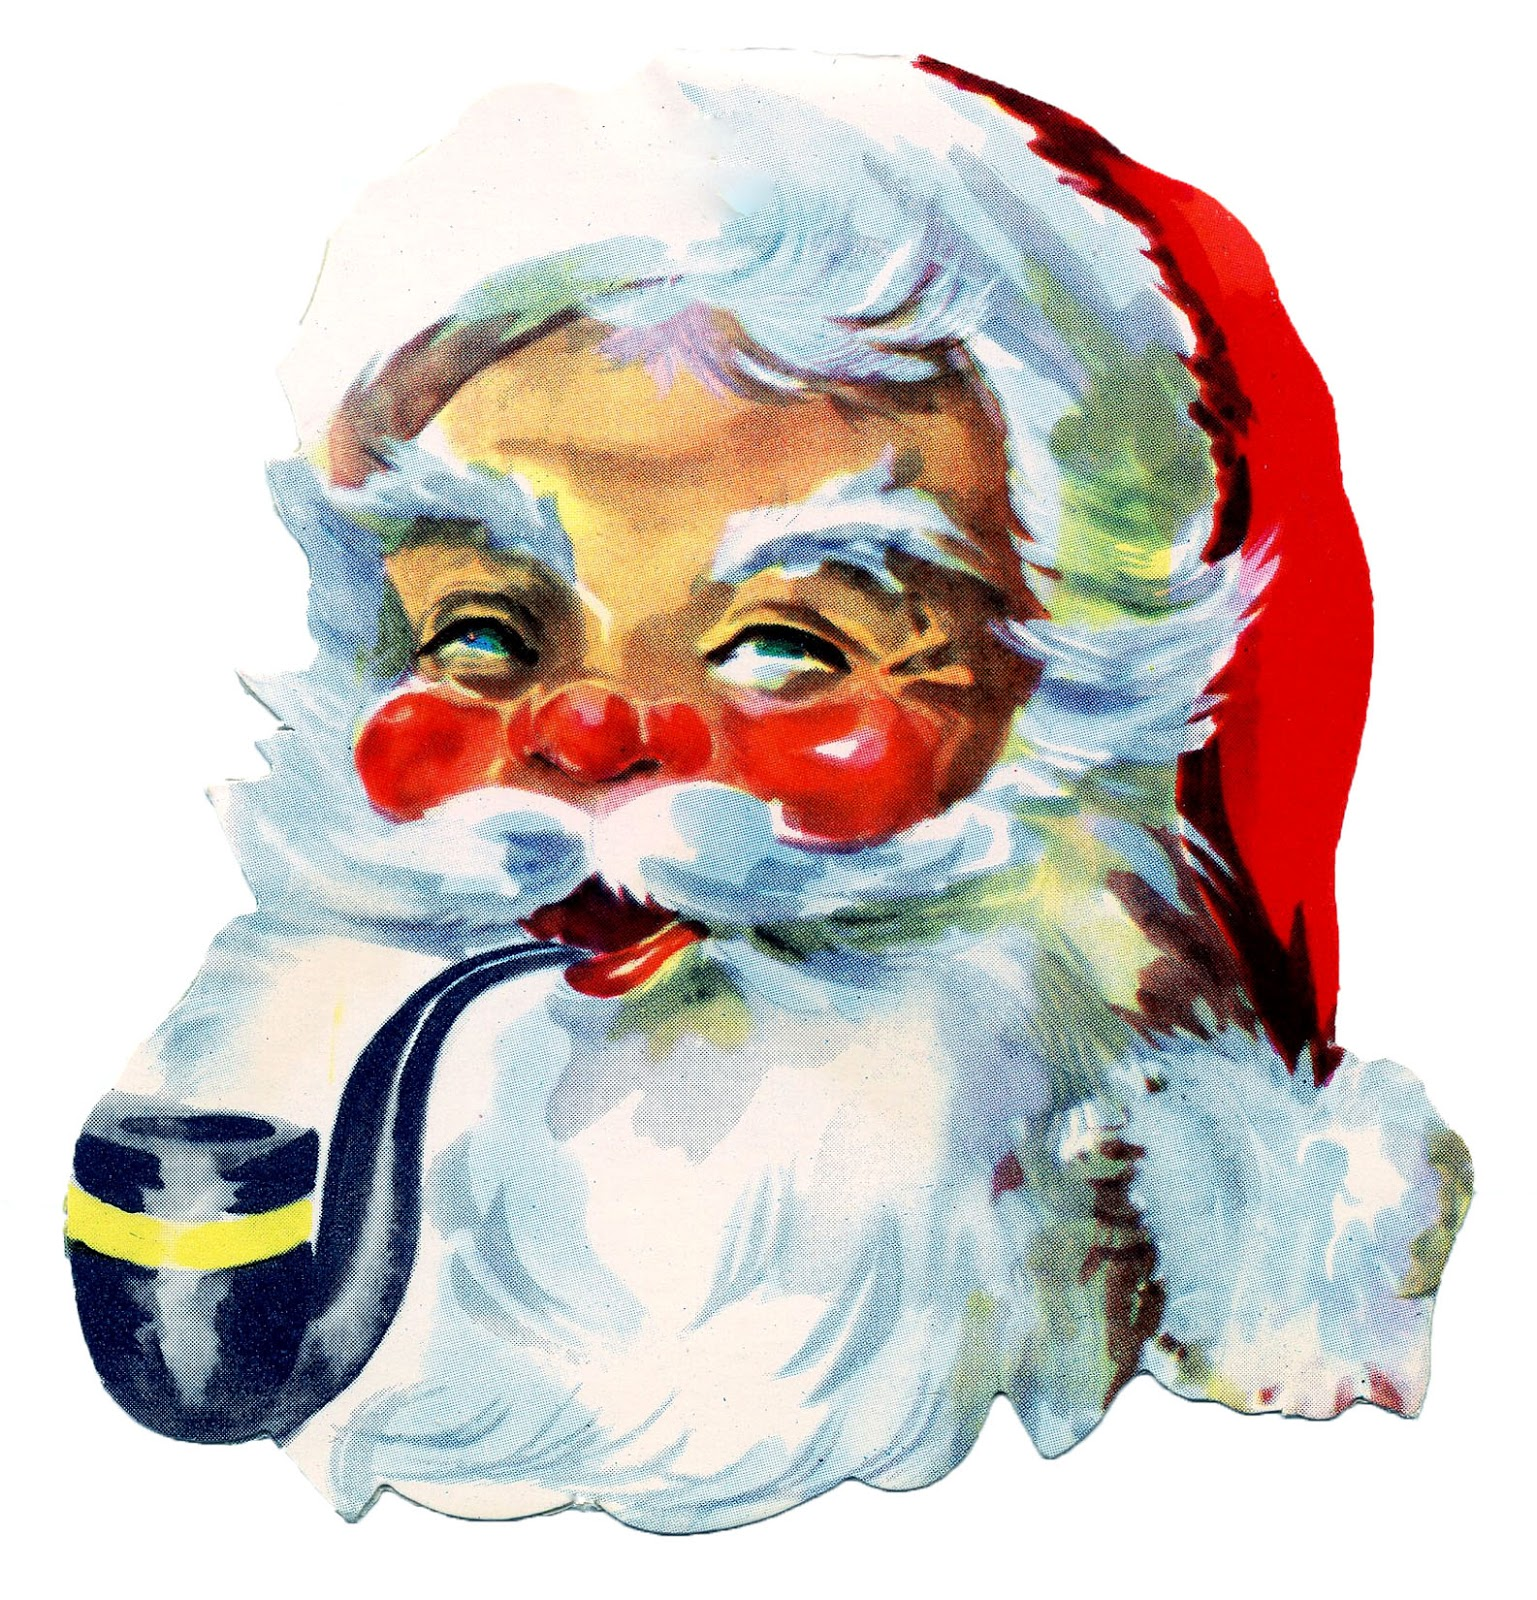 Retro Graphic Gorgeous Rosy Cheeked Santa With Pipe